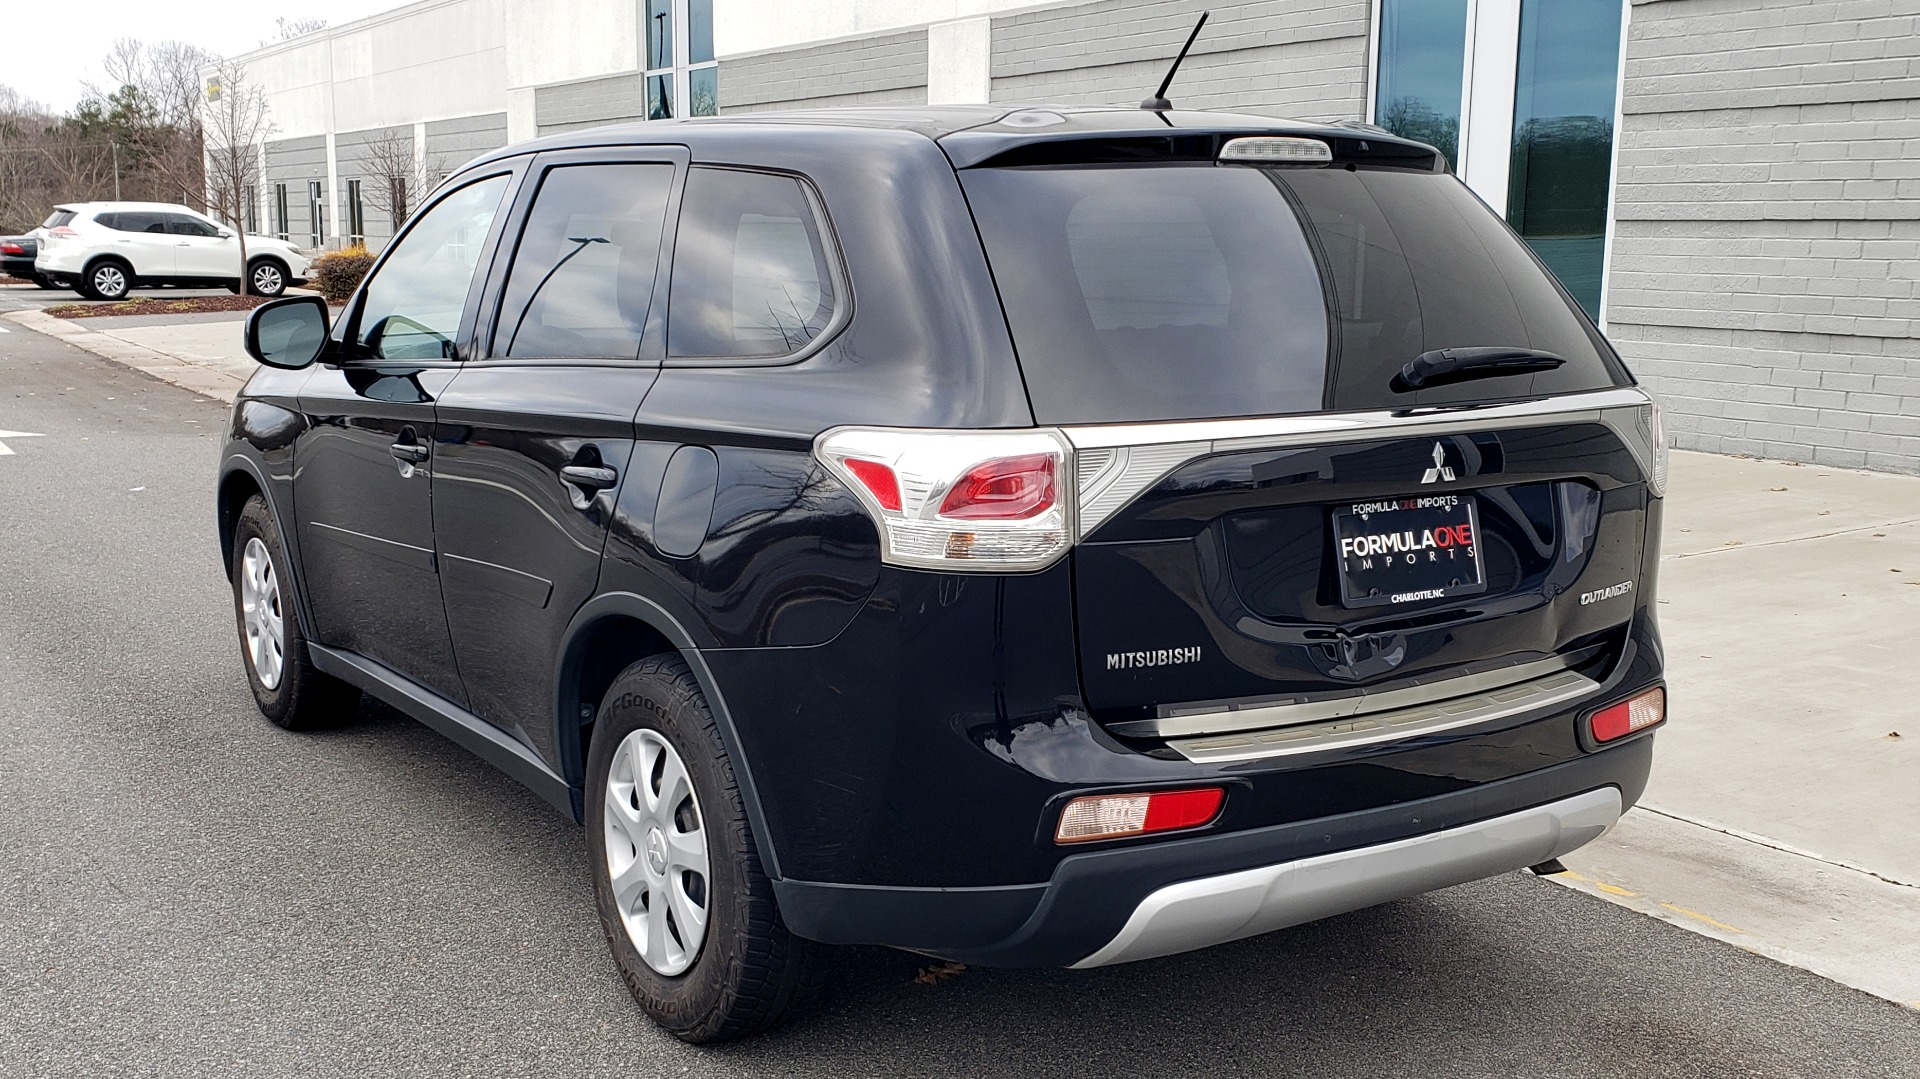 Used 2015 Mitsubishi OUTLANDER ES 2.4L SUV / CVT / FWD / KEYLESS ENTRY / 16-IN WHEELS for sale $12,995 at Formula Imports in Charlotte NC 28227 3